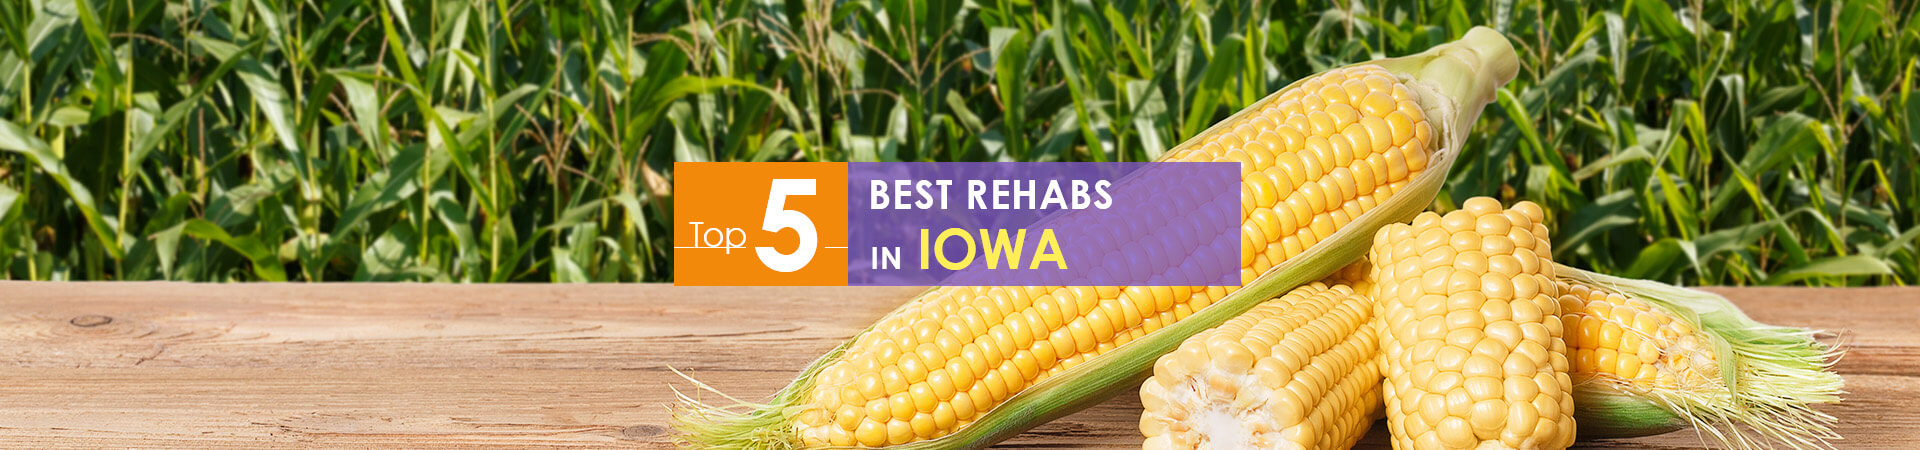 corncobs and top 5 rehabs in Iowa caption